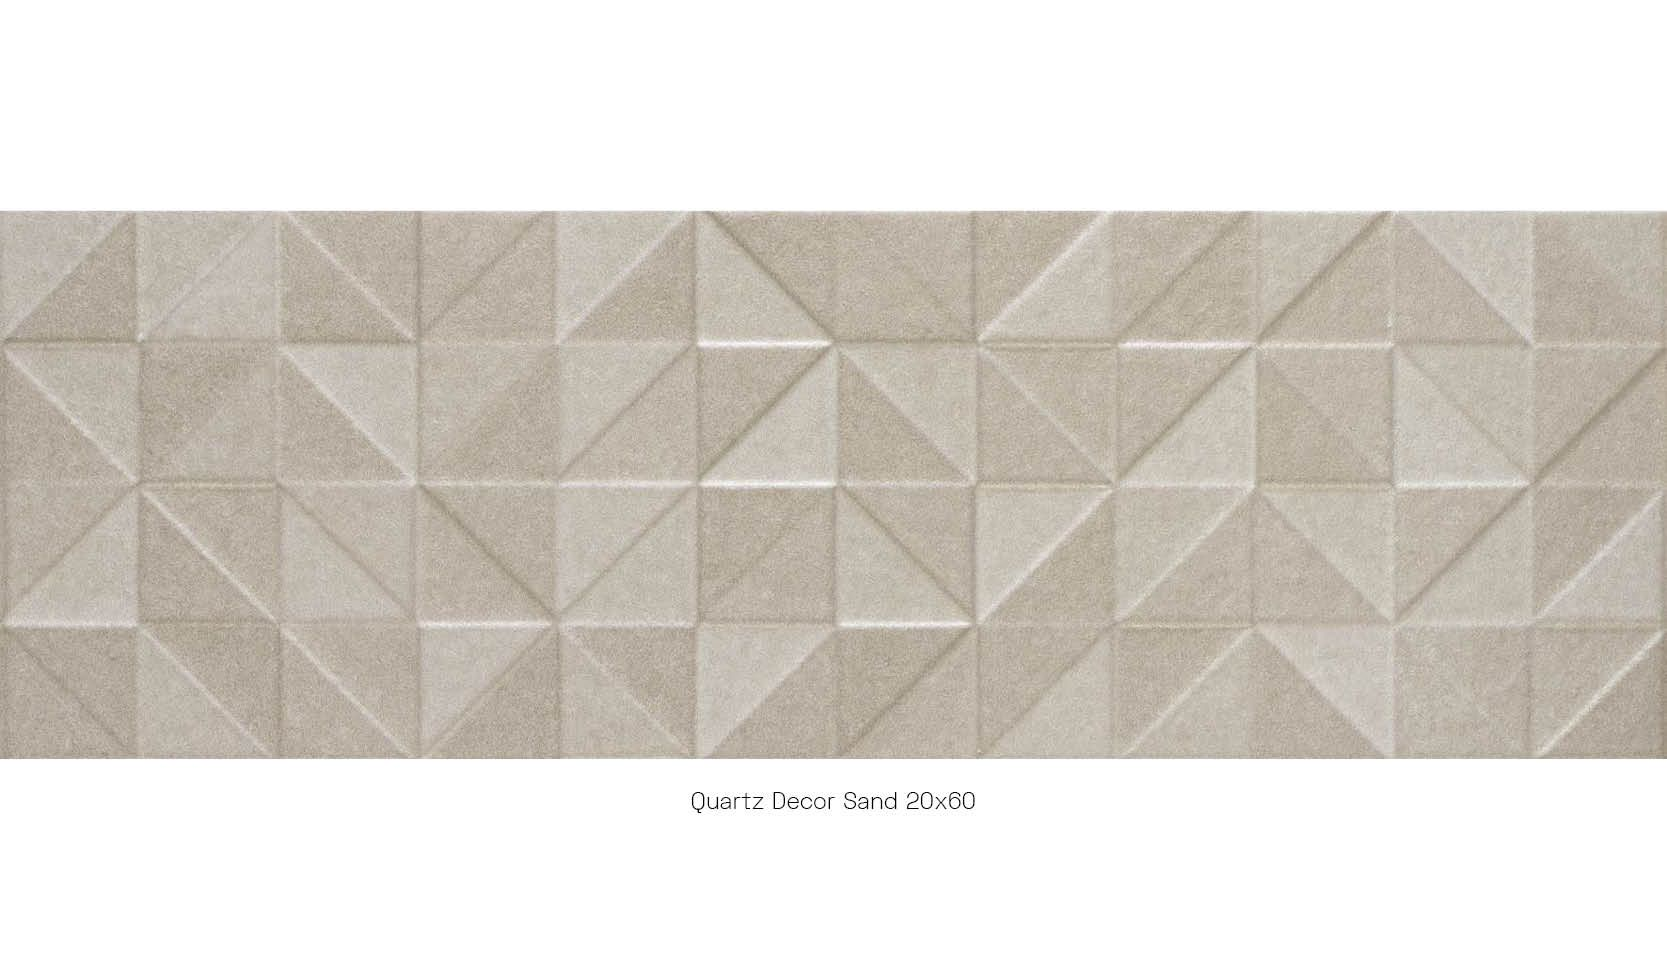 Quartz decor sand 20 x 60